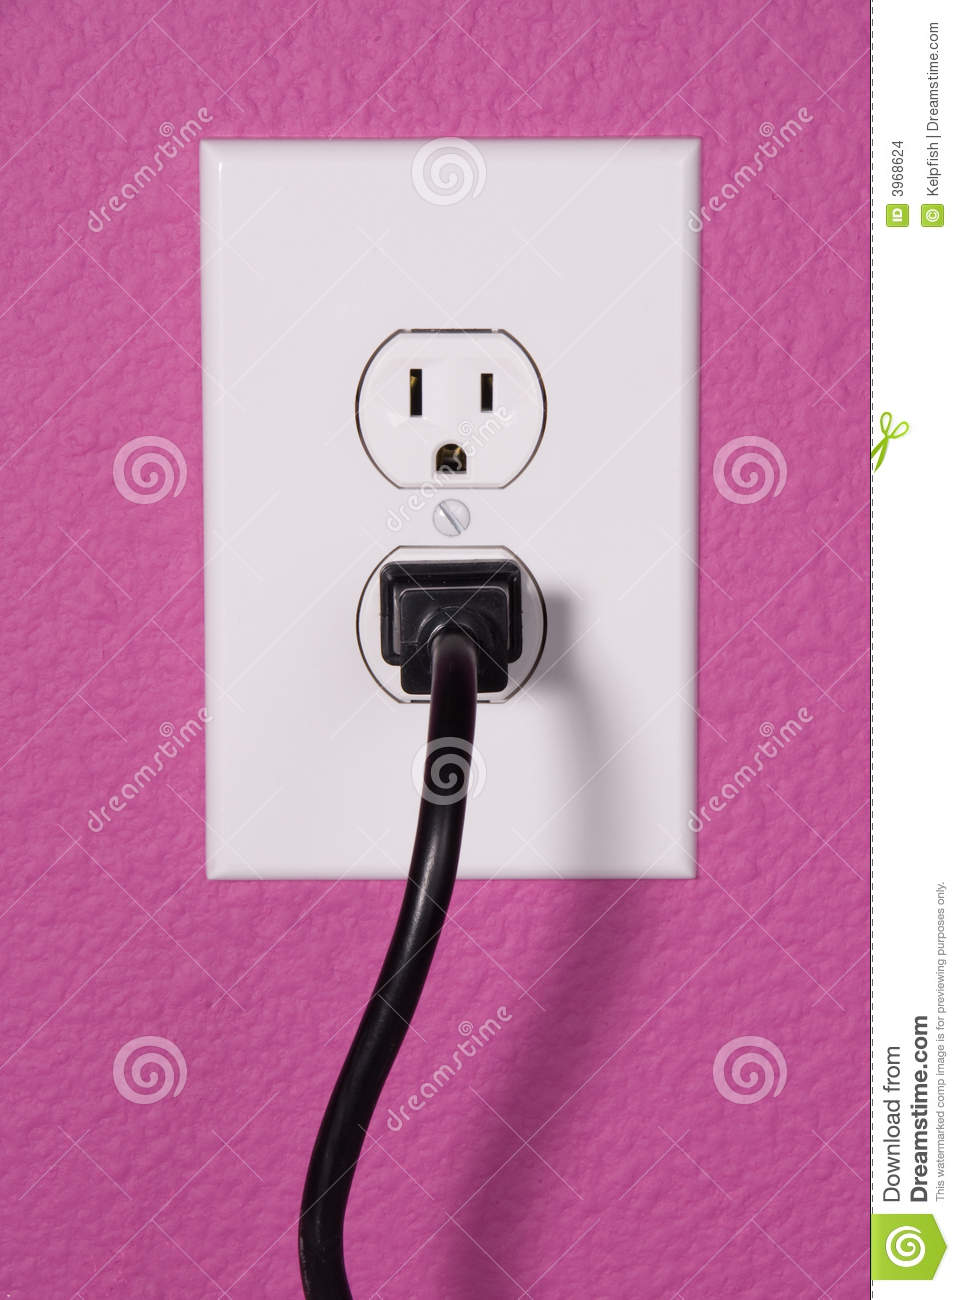 medium resolution of a clean image of a 110 volt wall power outlet against a freshly painted wall perfect image for any abstract energy promotion use or to make inferences for